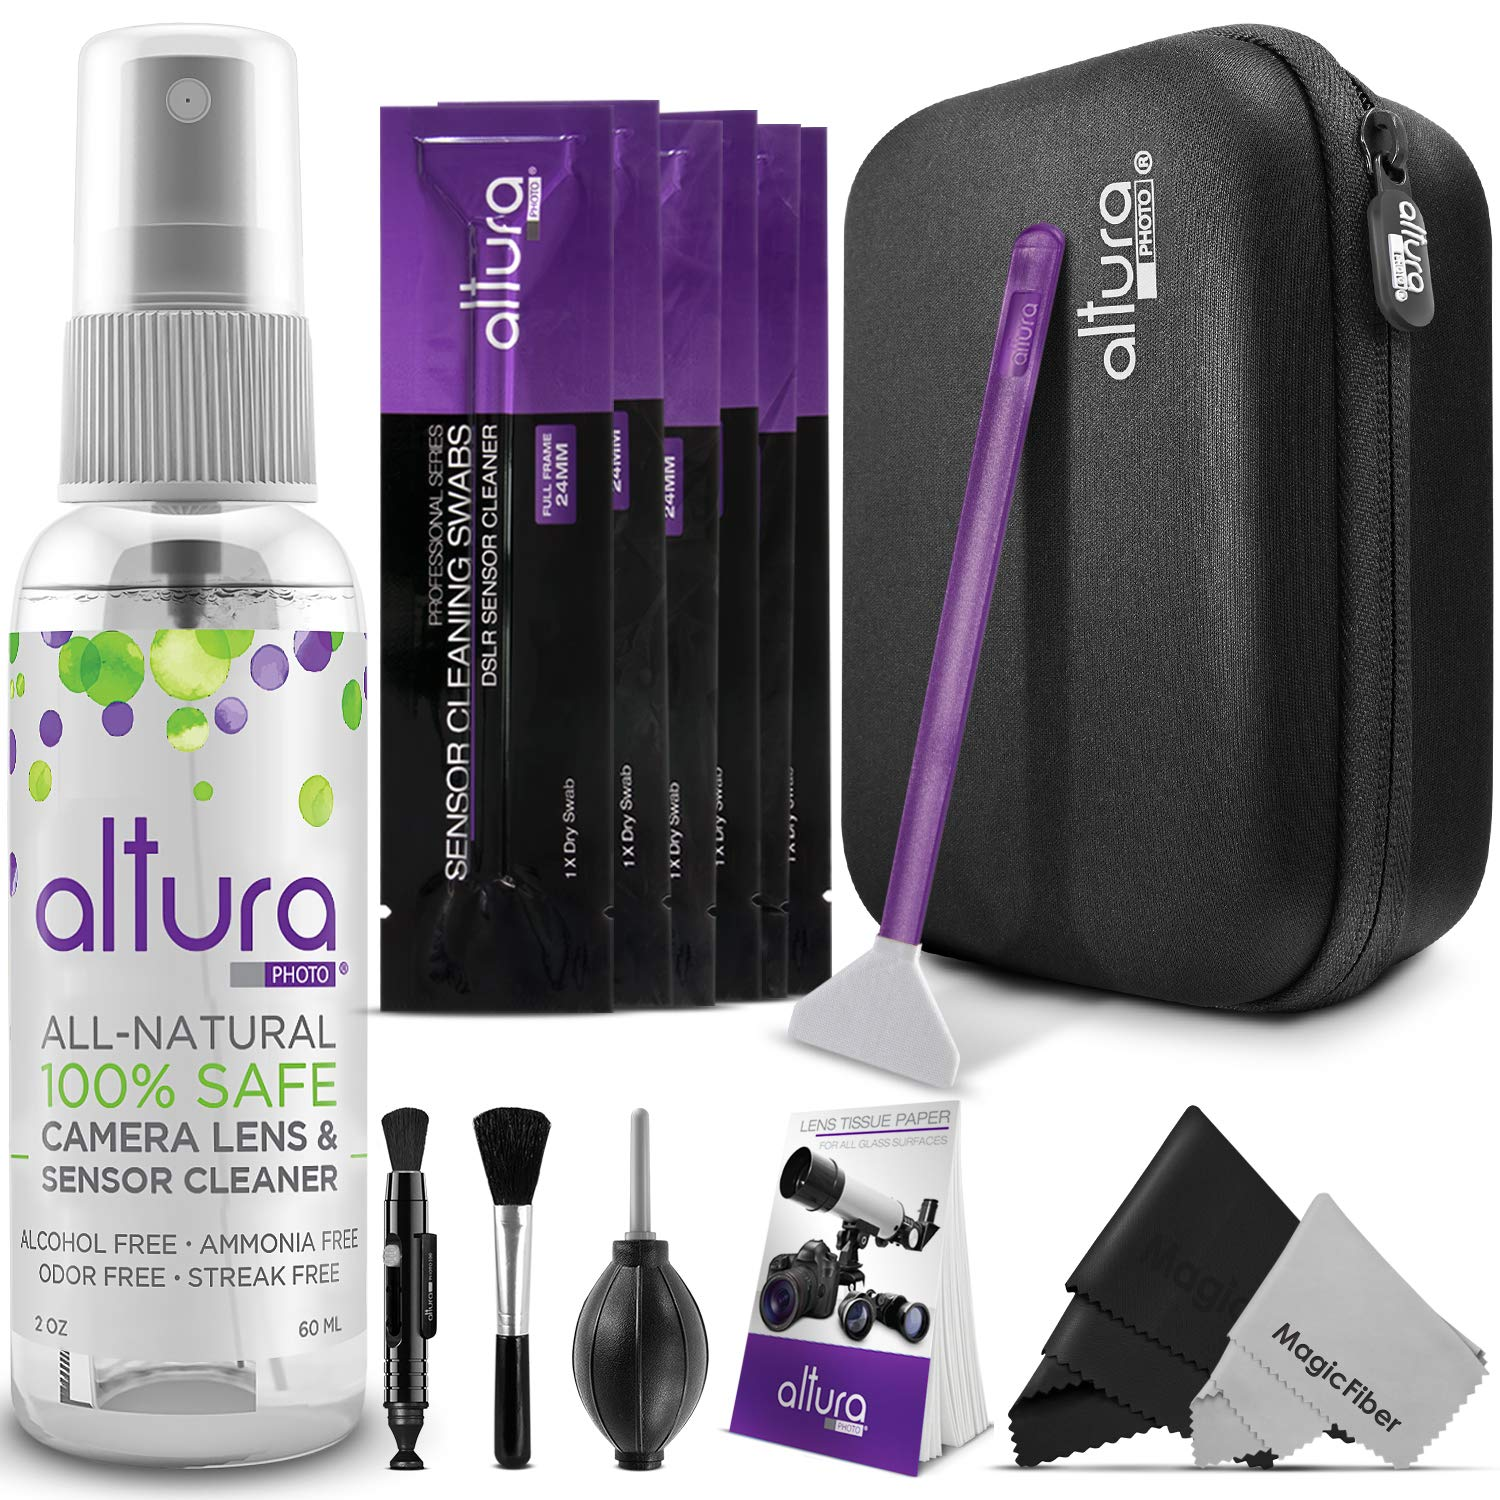 Altura Photo Professional Full Frame Sensor Cleaning Kit - Camera Cleaning Kit for FF DSLR & Mirrorless Cameras - w/Sensor Cleaning Swabs & Case, Works as Camera Lens Cleaning Kit, Sensor Cleaner